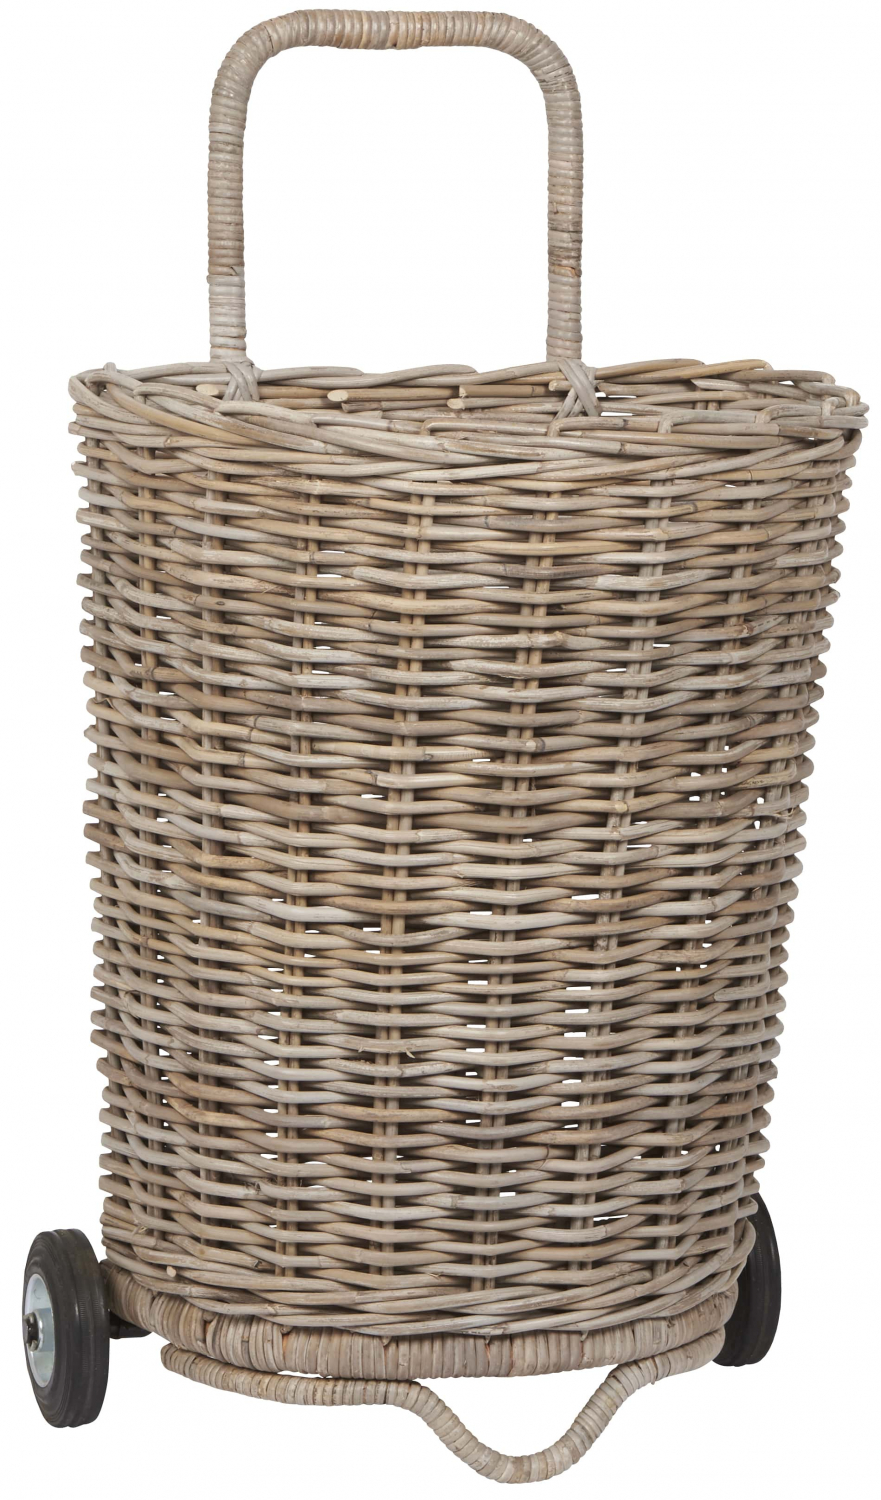 IB LAURSEN Havetrolley af rattan